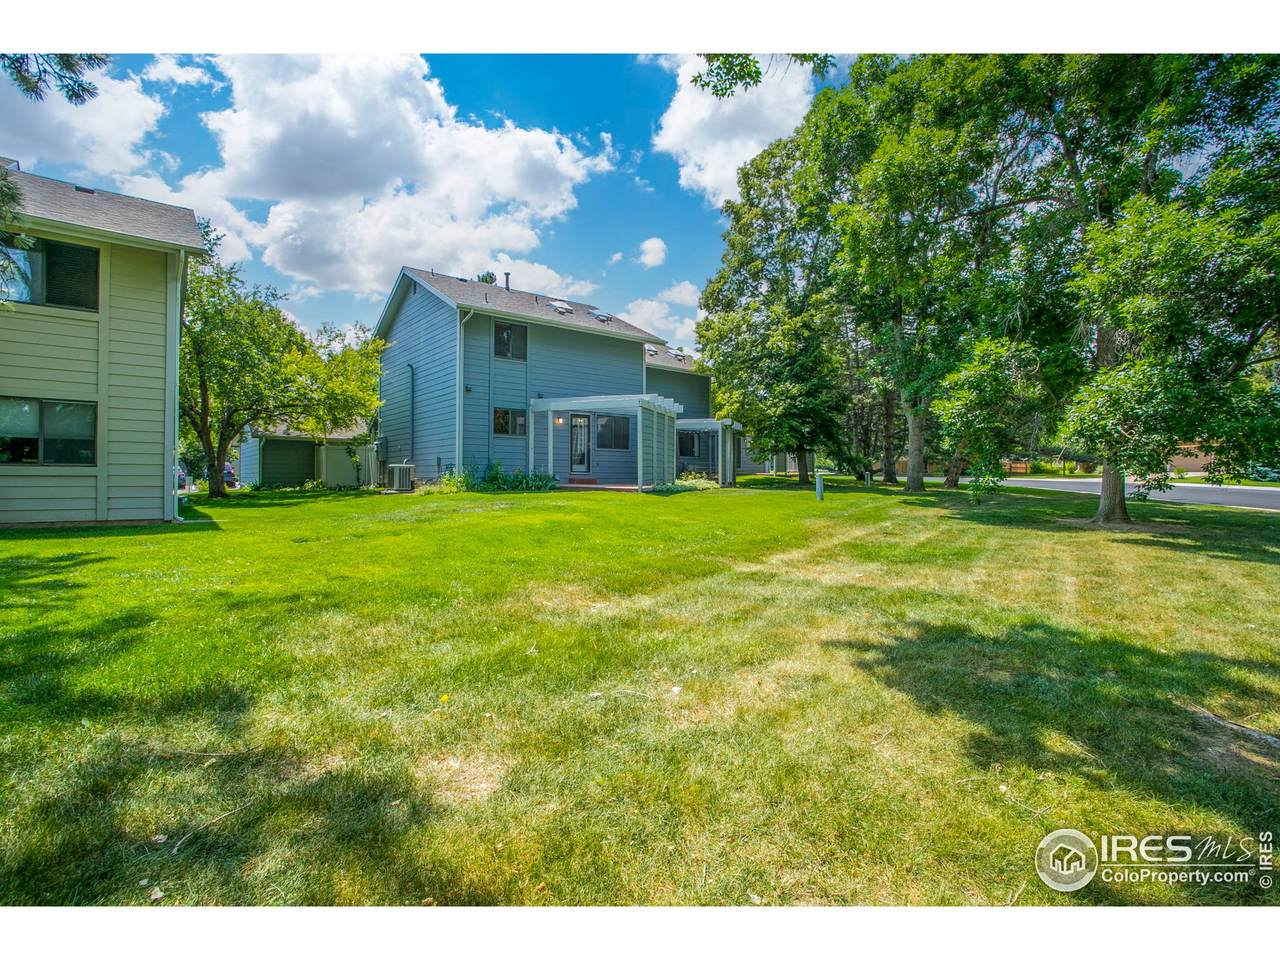 3500 Rolling Green Dr - Photo 1